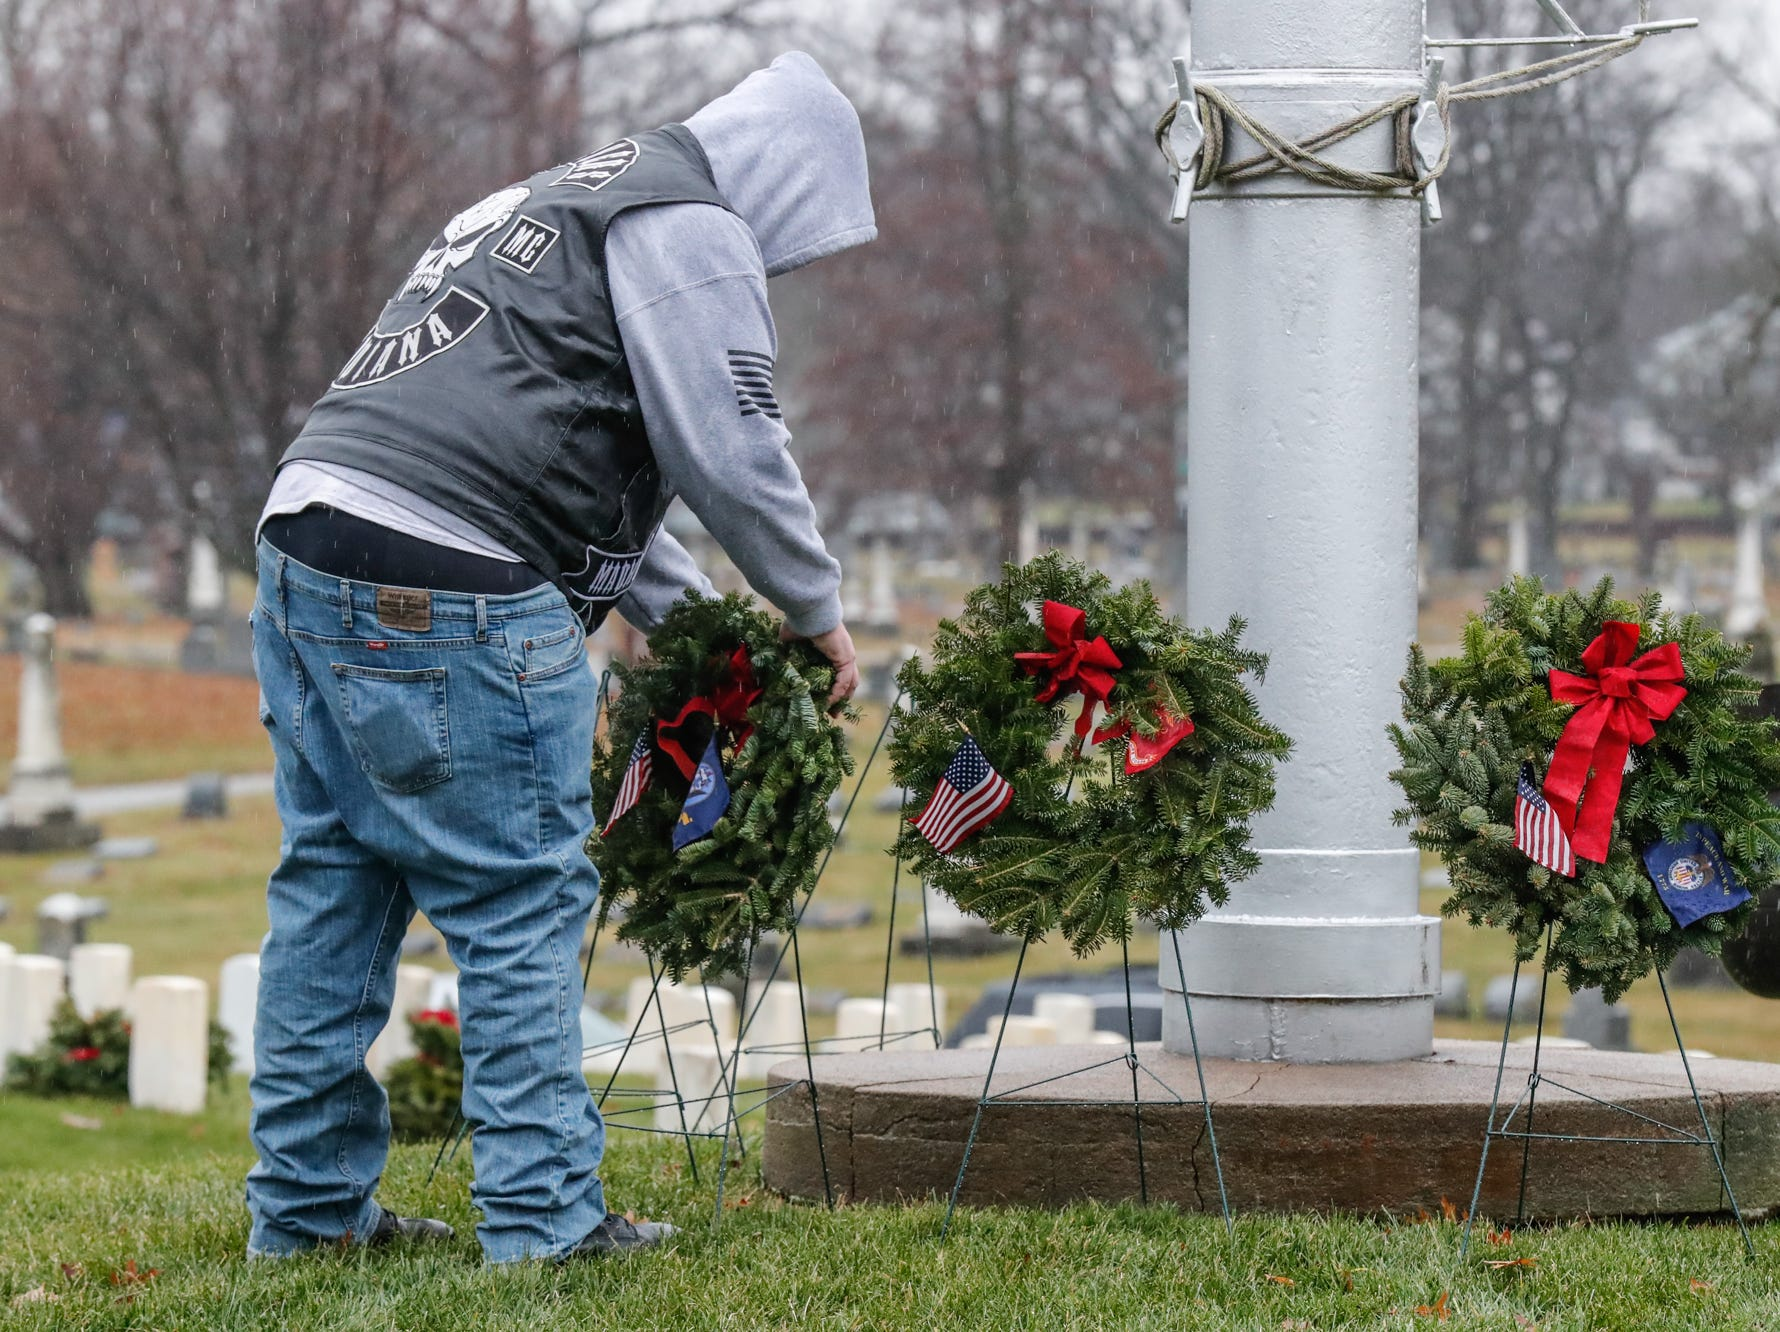 Navy veteran, Michael Goad lays a wreath during the Wreaths Across America wreath laying ceremony in remembrance of fallen military heroes at Crown Hill Cemetery on Saturday, Dec. 2018.